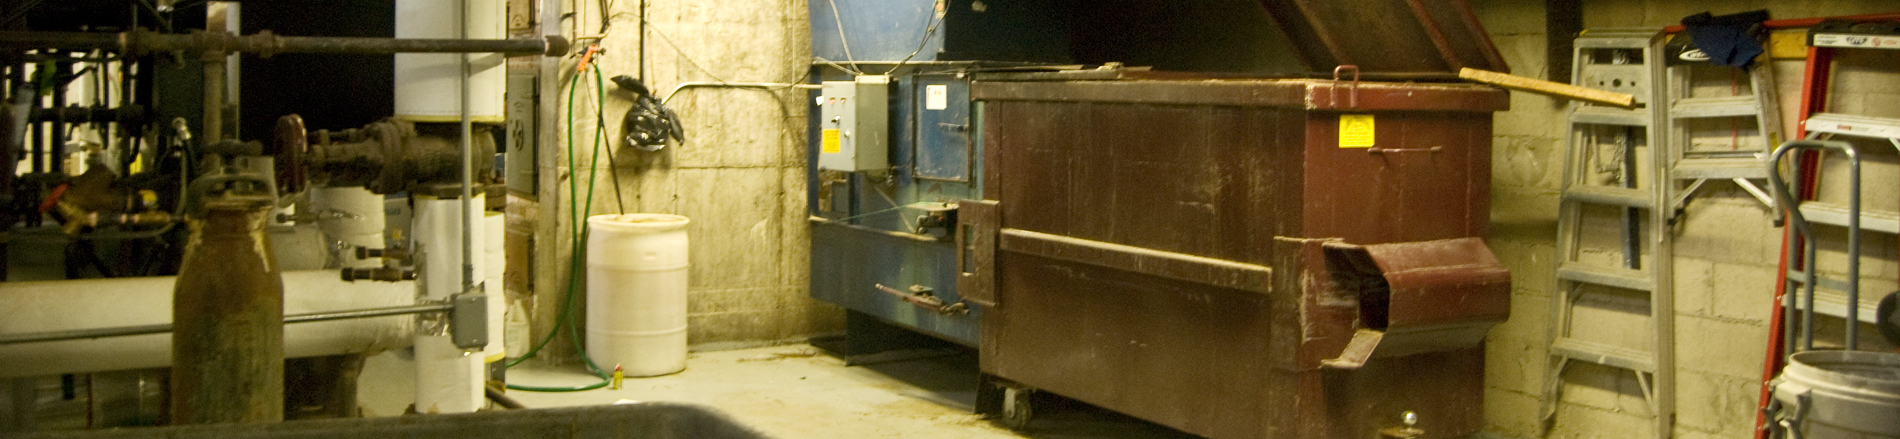 Garbage Compactor Rooms & Chutes